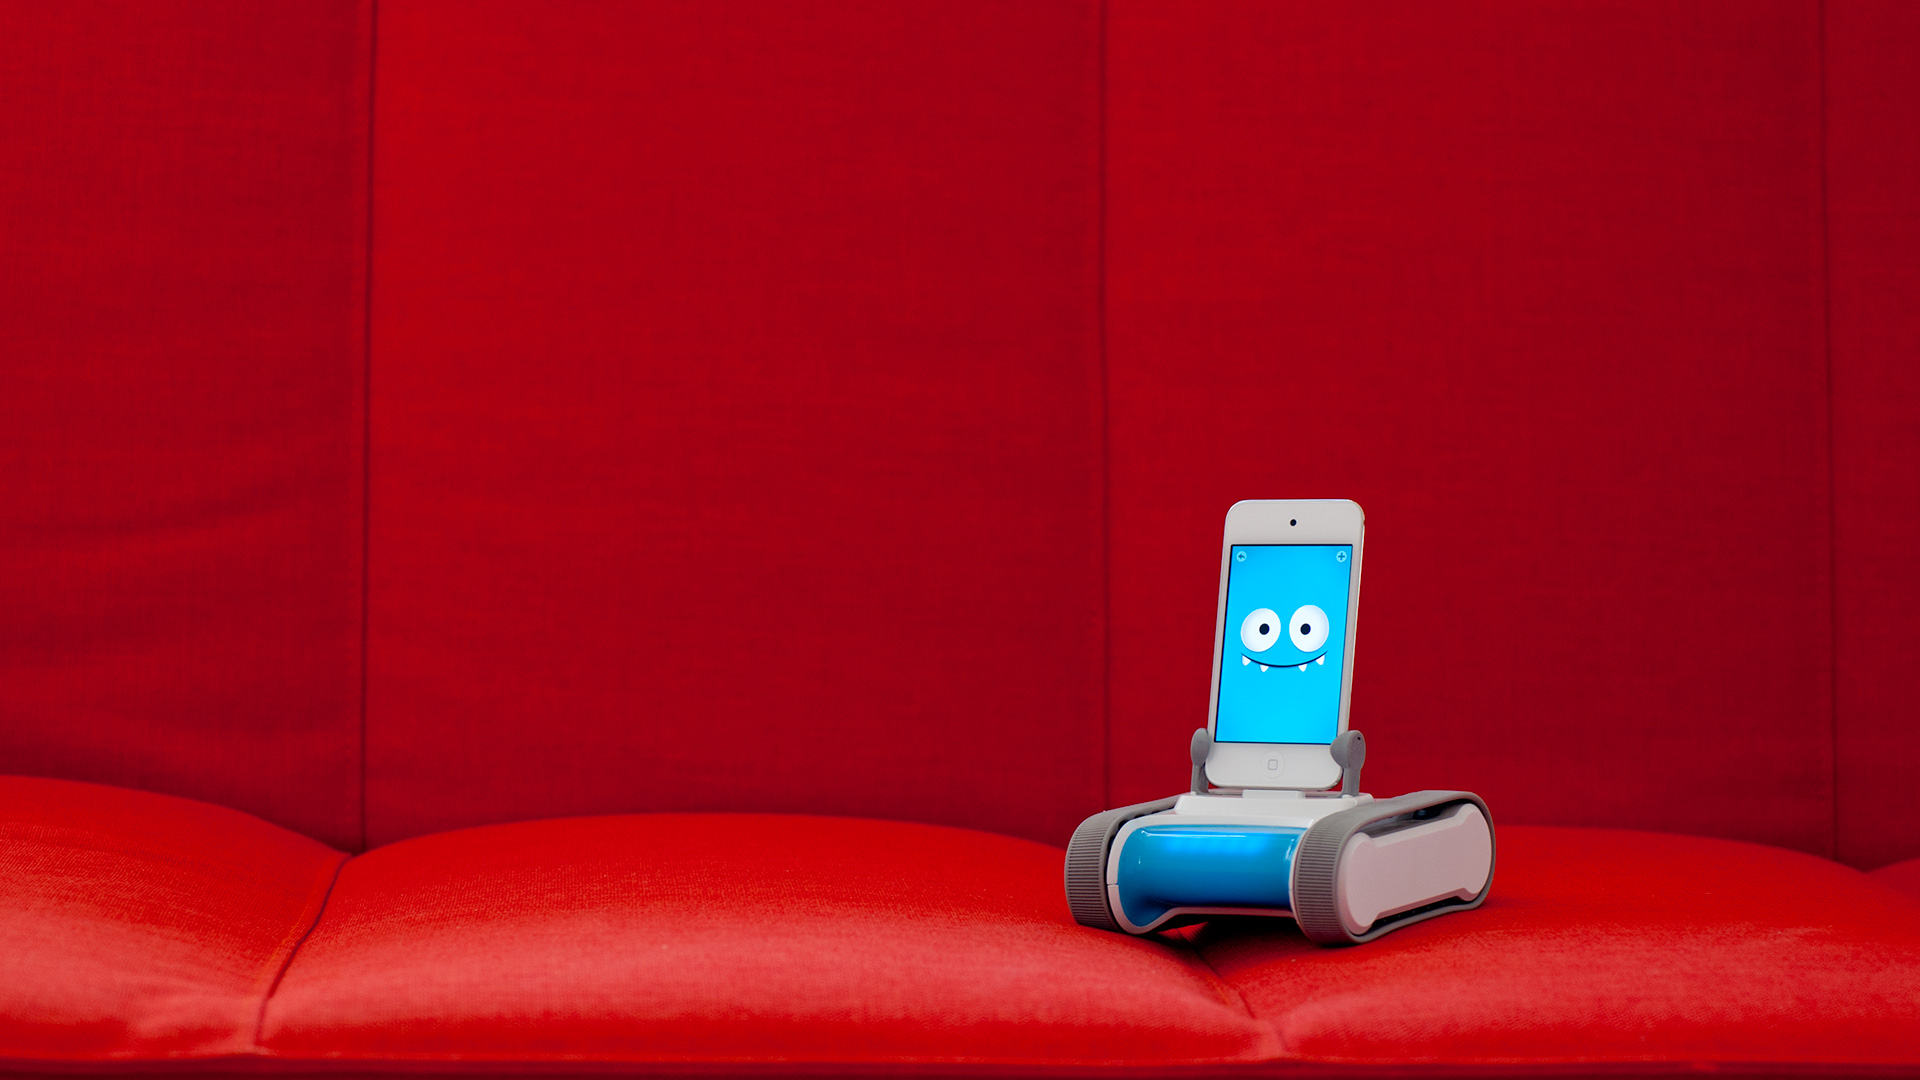 ROMO, the robotic pet, comes in peace. And, unlike a puppy, he won't shed on the furniture